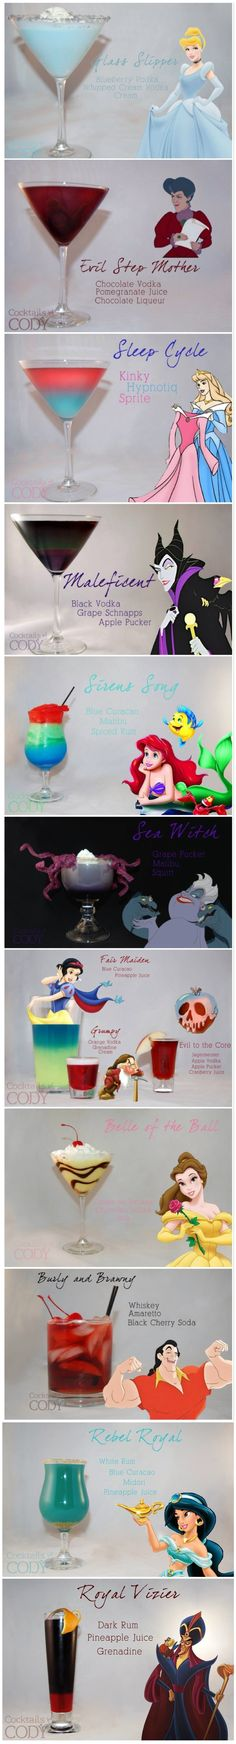 Disney themed cocktauls. These are so pretty and I would definitely try some of them.